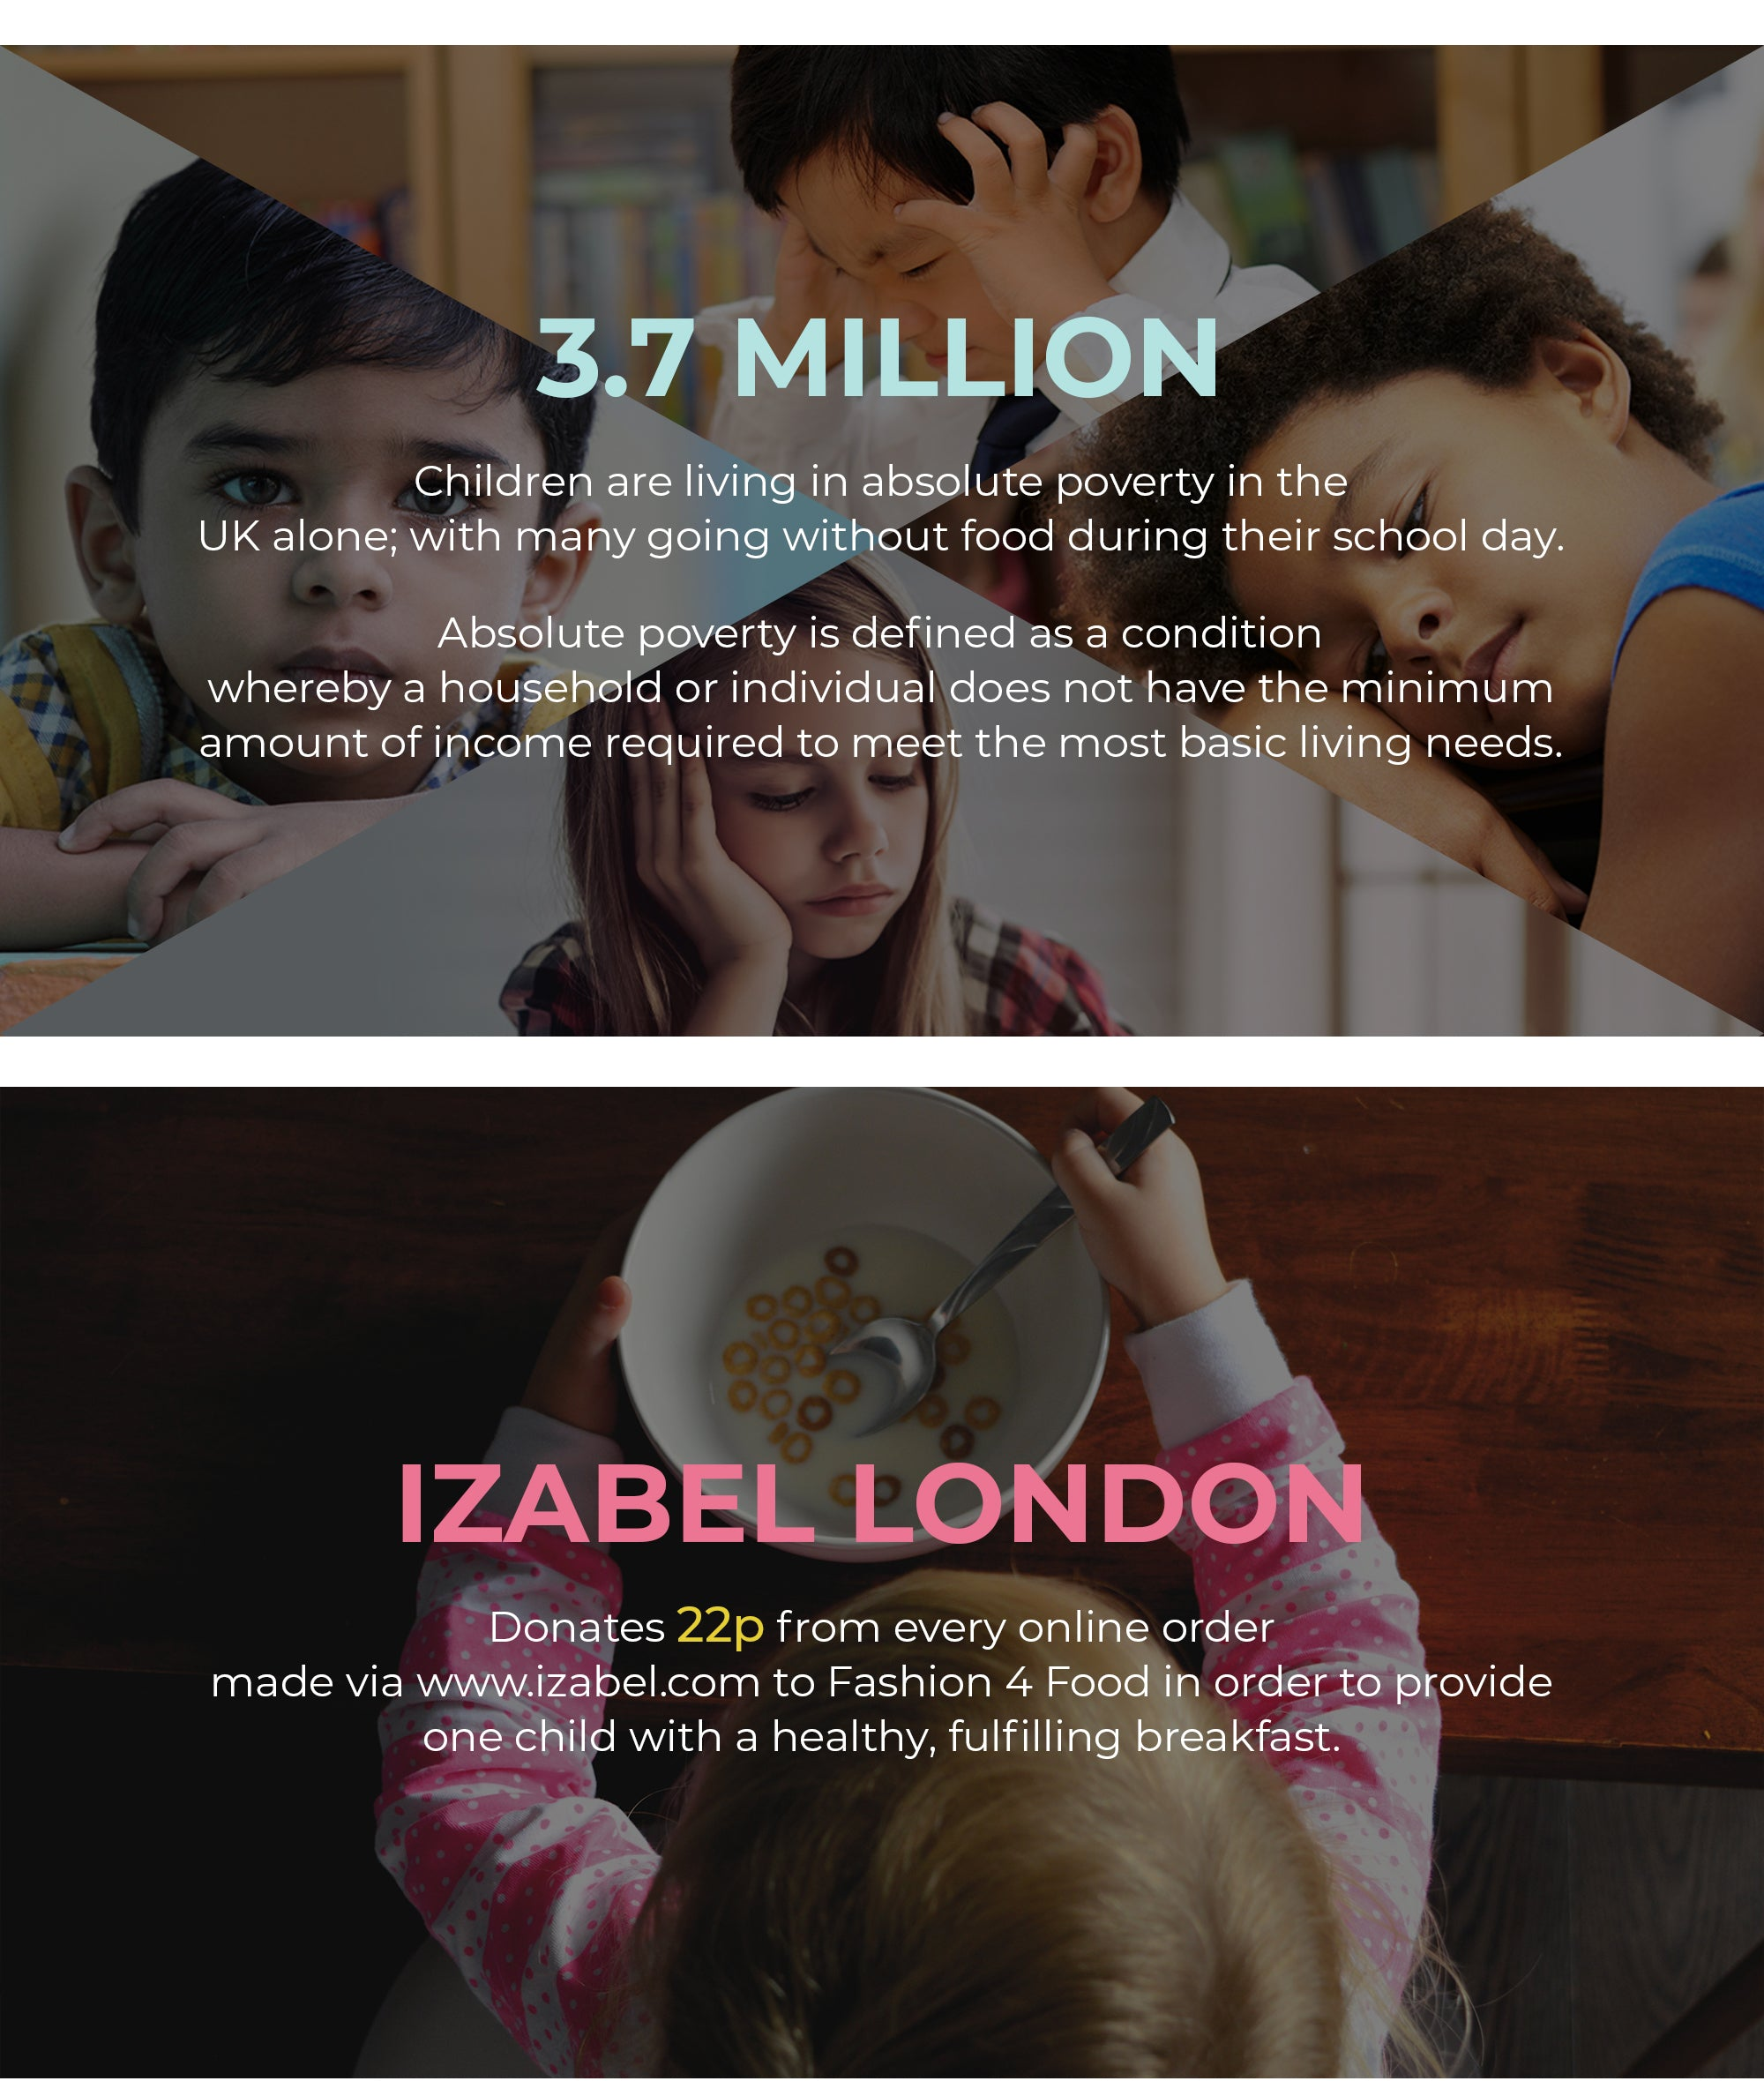 Izabel London & Fashion 4 Food Partnership